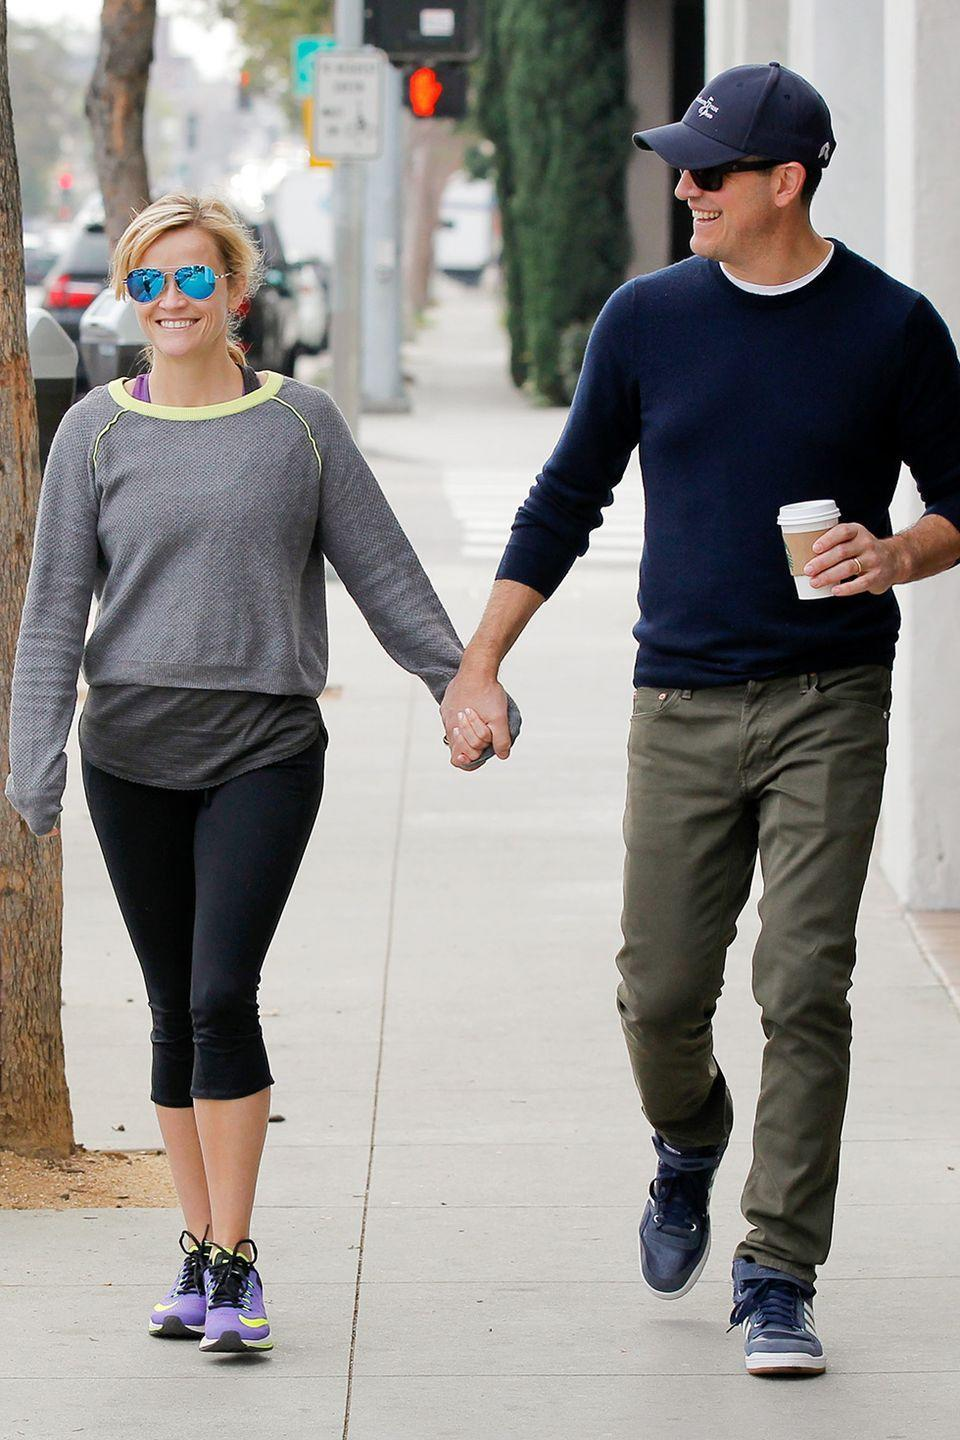 "<p>After just less than a year of dating, Oscar winner Reese got engaged to the talent agent around Christmastime 2010, per  <a class=""link rapid-noclick-resp"" href=""https://people.com/celebrity/reese-witherspoon-engaged-to-jim-toth/"" rel=""nofollow noopener"" target=""_blank"" data-ylk=""slk:People""><em>People</em></a>.</p>"